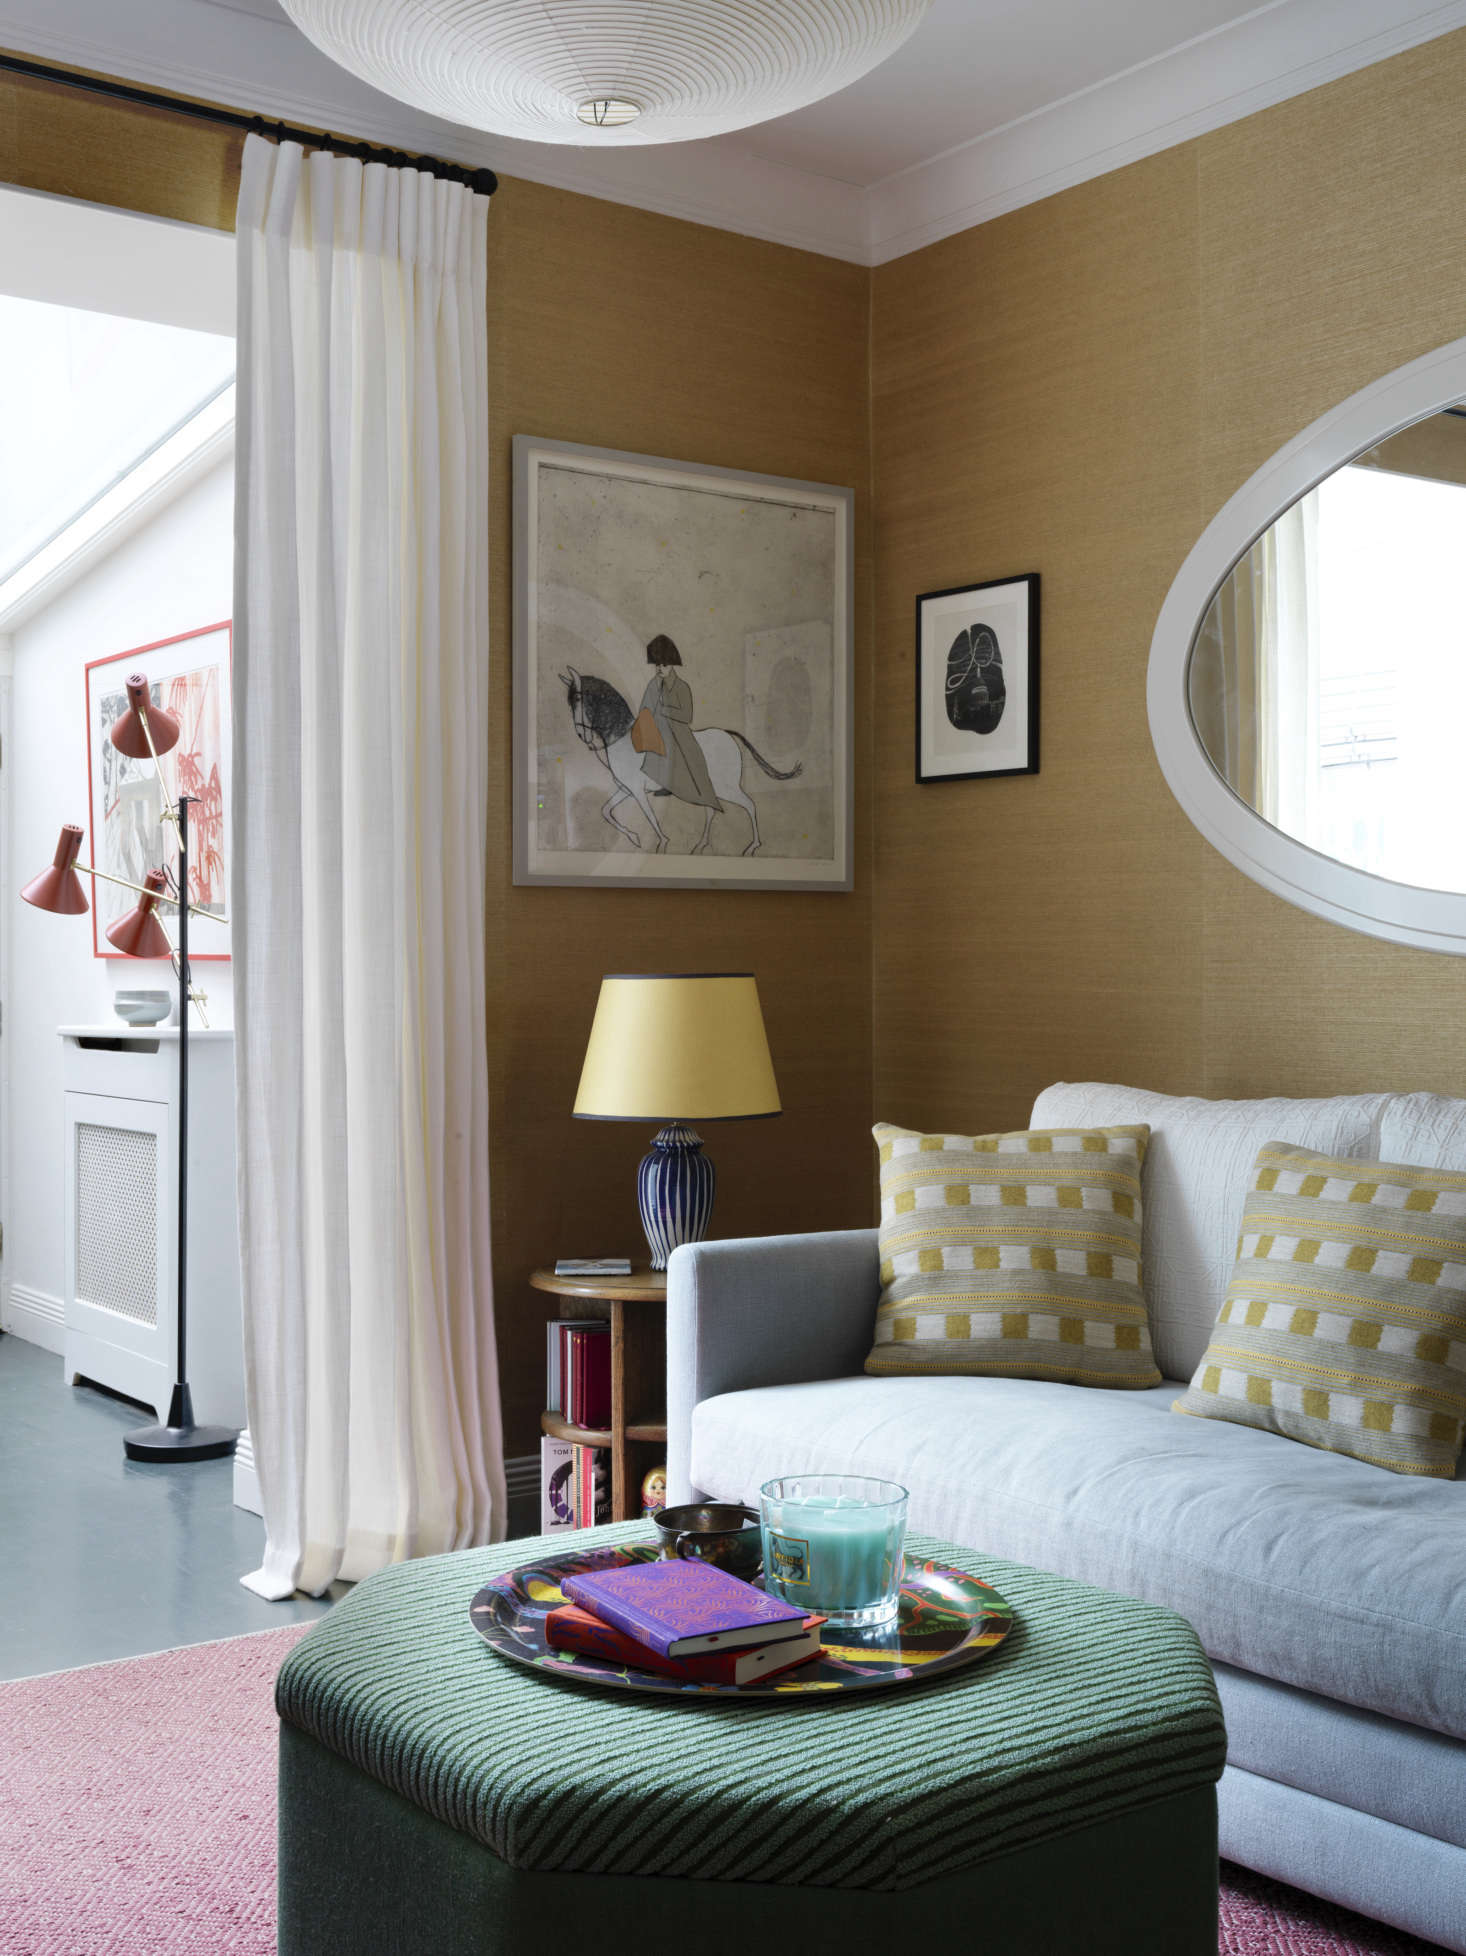 Lacking space for a door, Heuman hung a curtain of unlined white linen that &#8